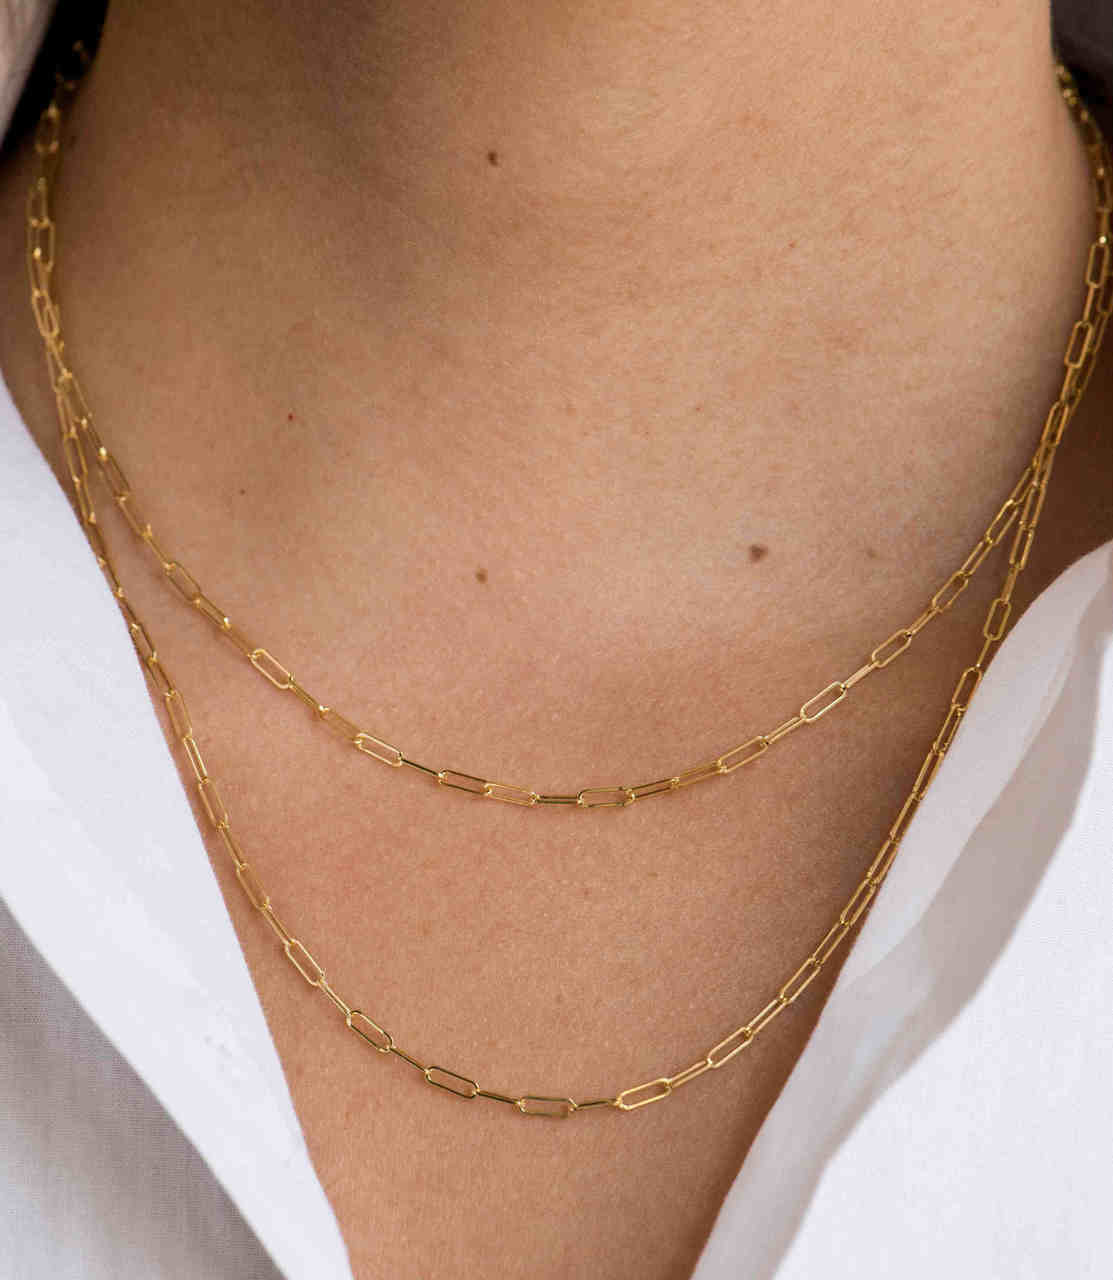 14k. gold open link chain necklace